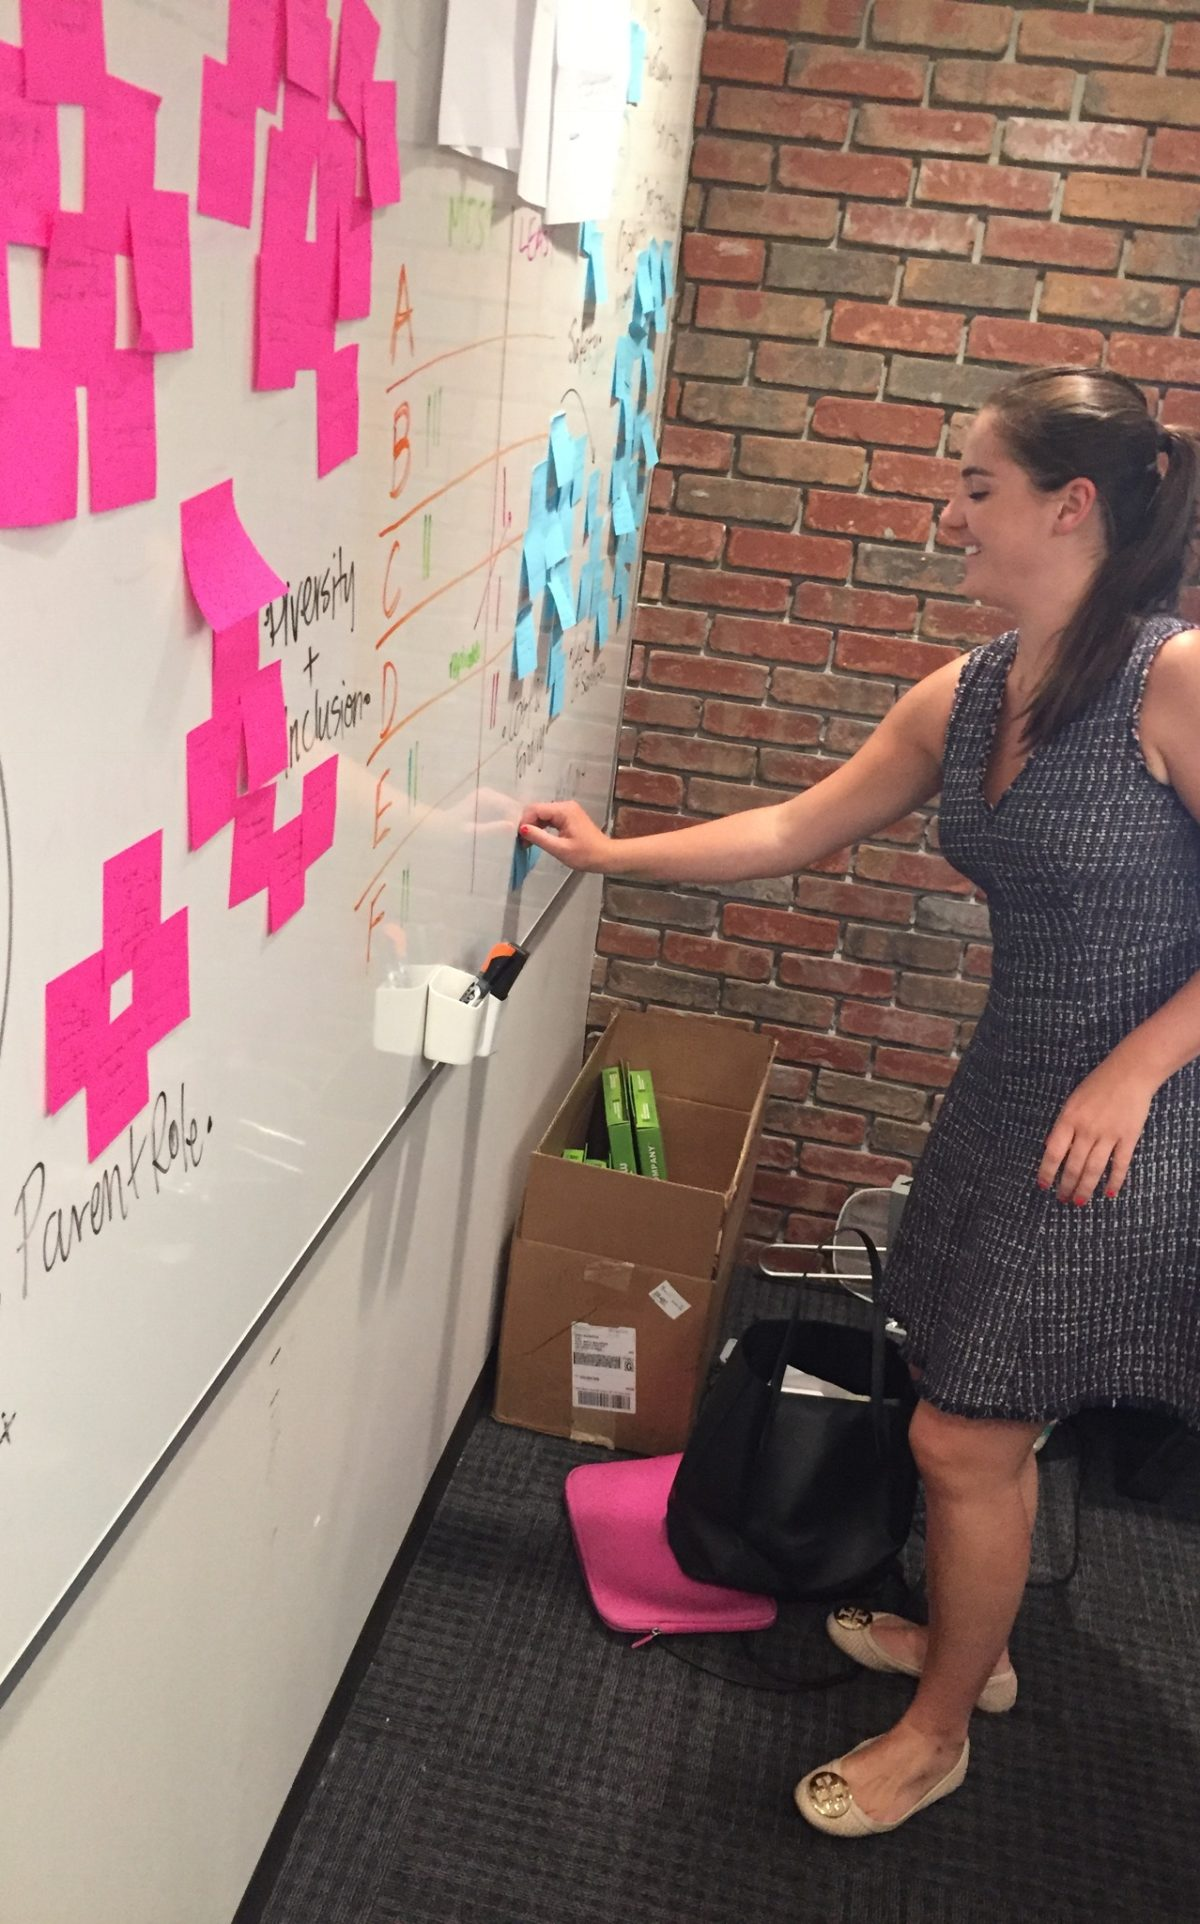 Photo of Lindsay, woman with dark hair pulled back in grey dress, posting pink posted notes on wall.